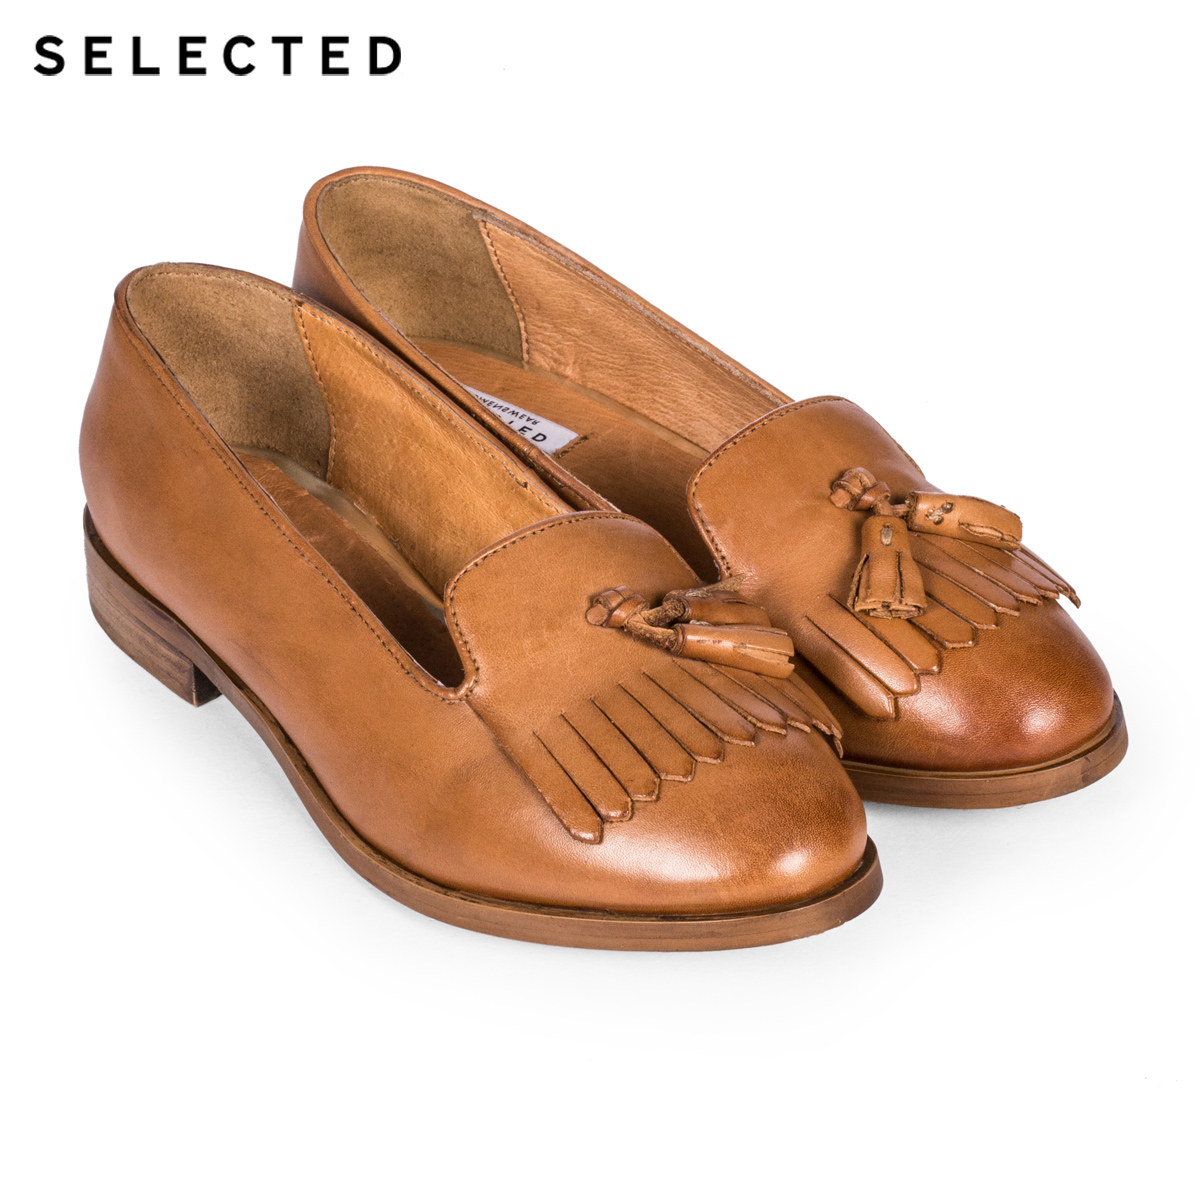 Off the shelf | SI Ms Ryder leather tassel loafers, SELECTED C-415398002